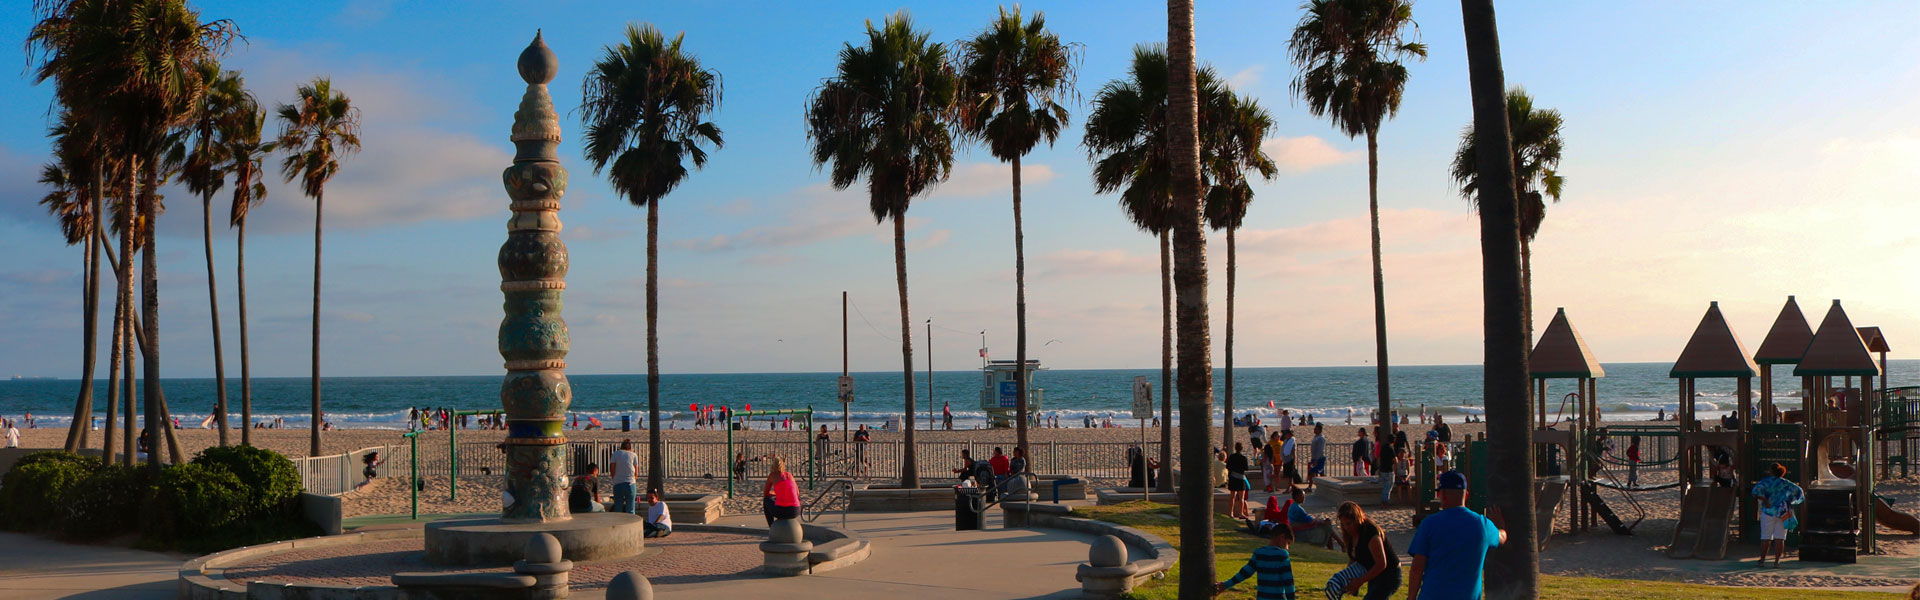 View of Venice Beach and Park